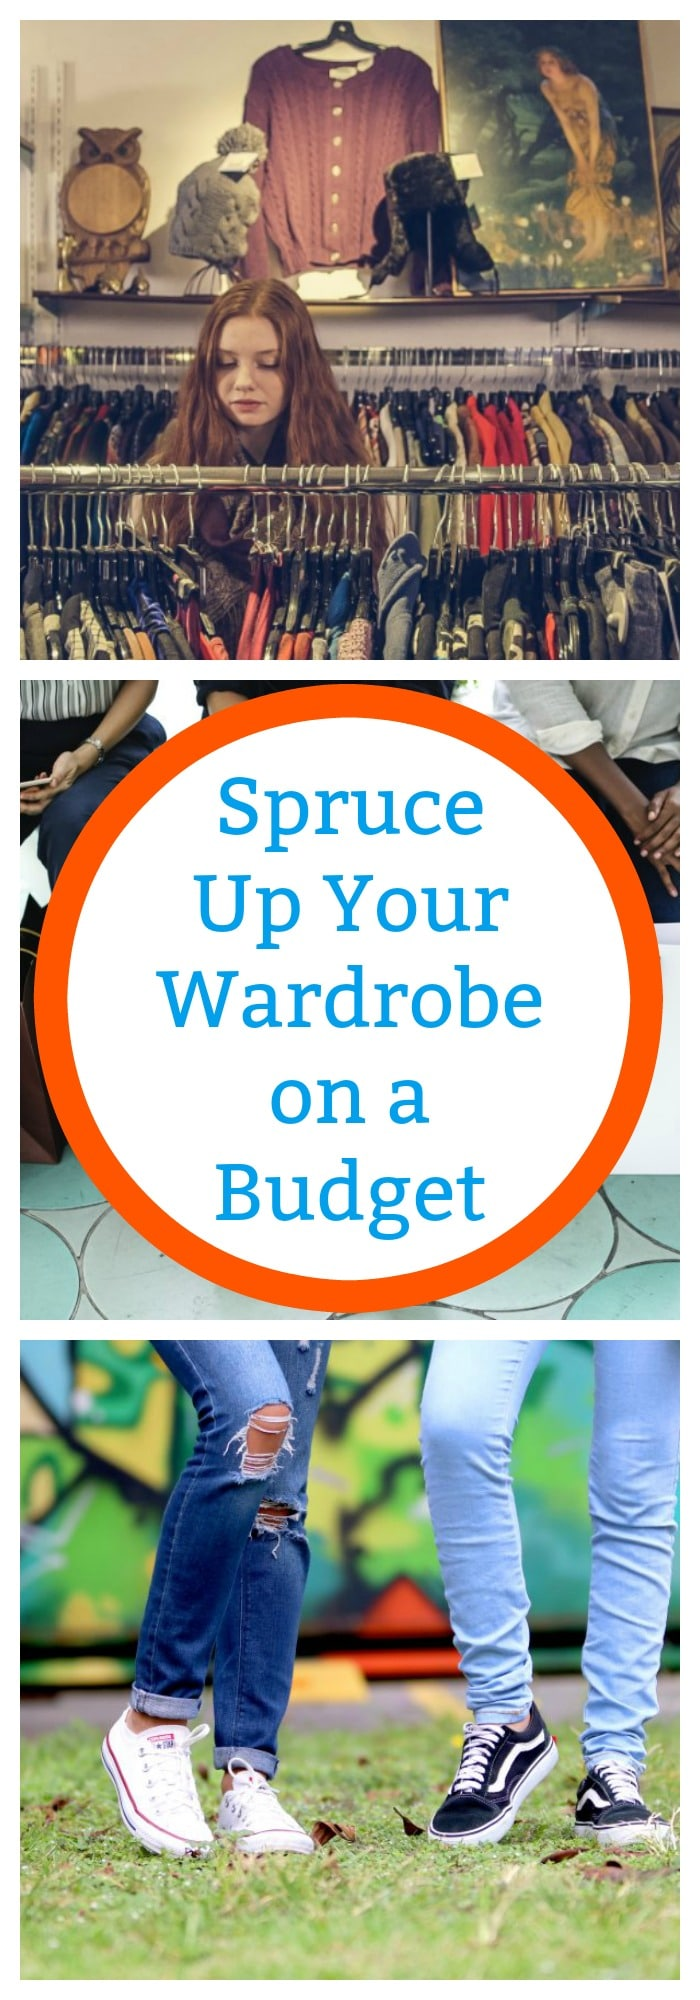 Spruce Up Your Wardrobe on a Budget